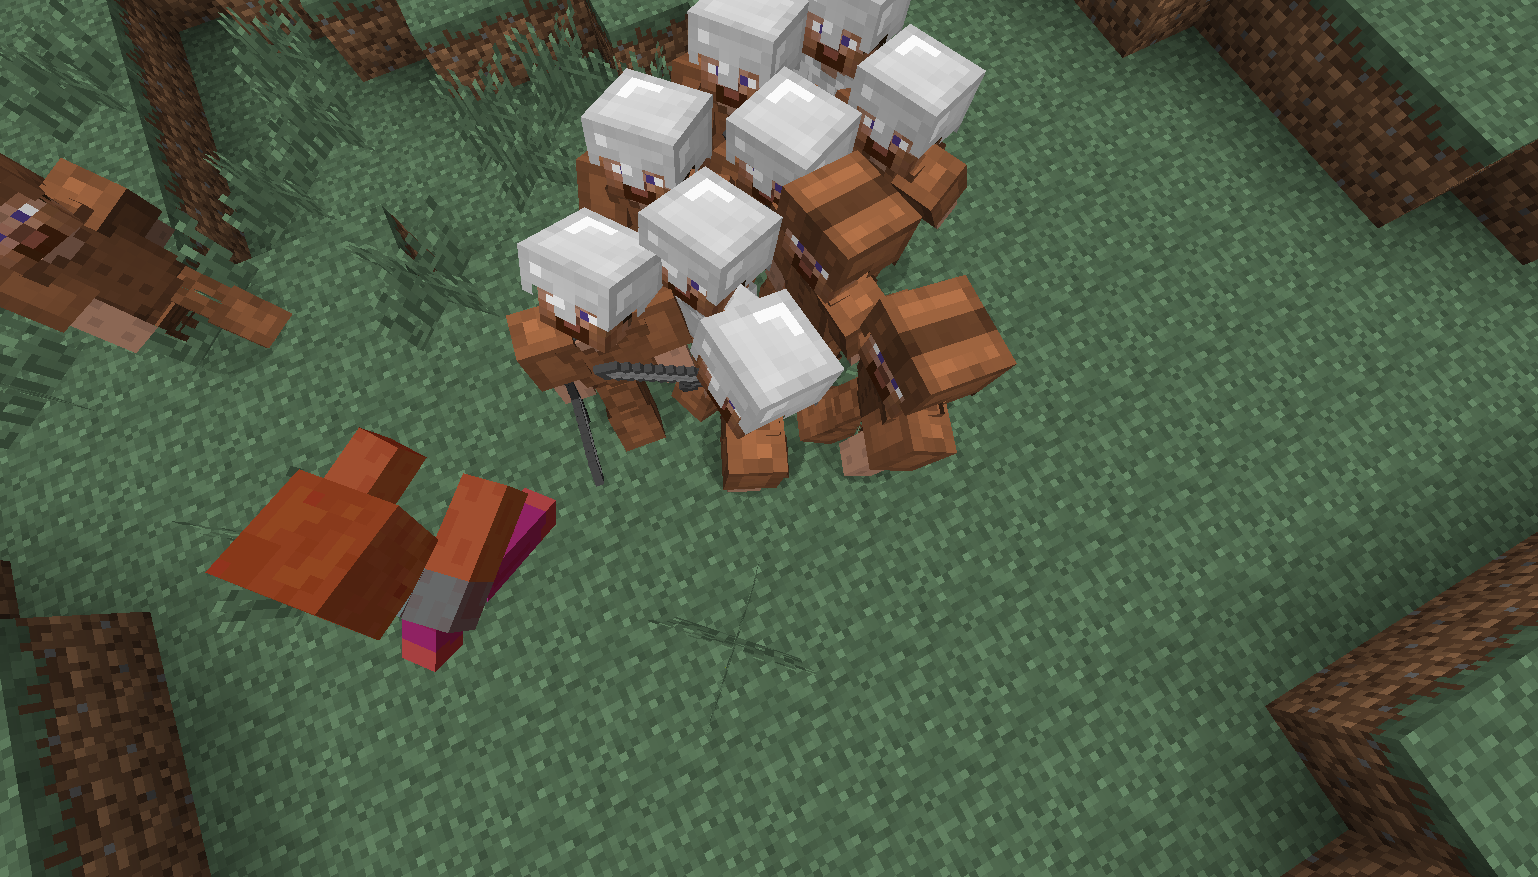 b7680  Defensive Villagers Mod 1 Defensive Villagers Screenshots